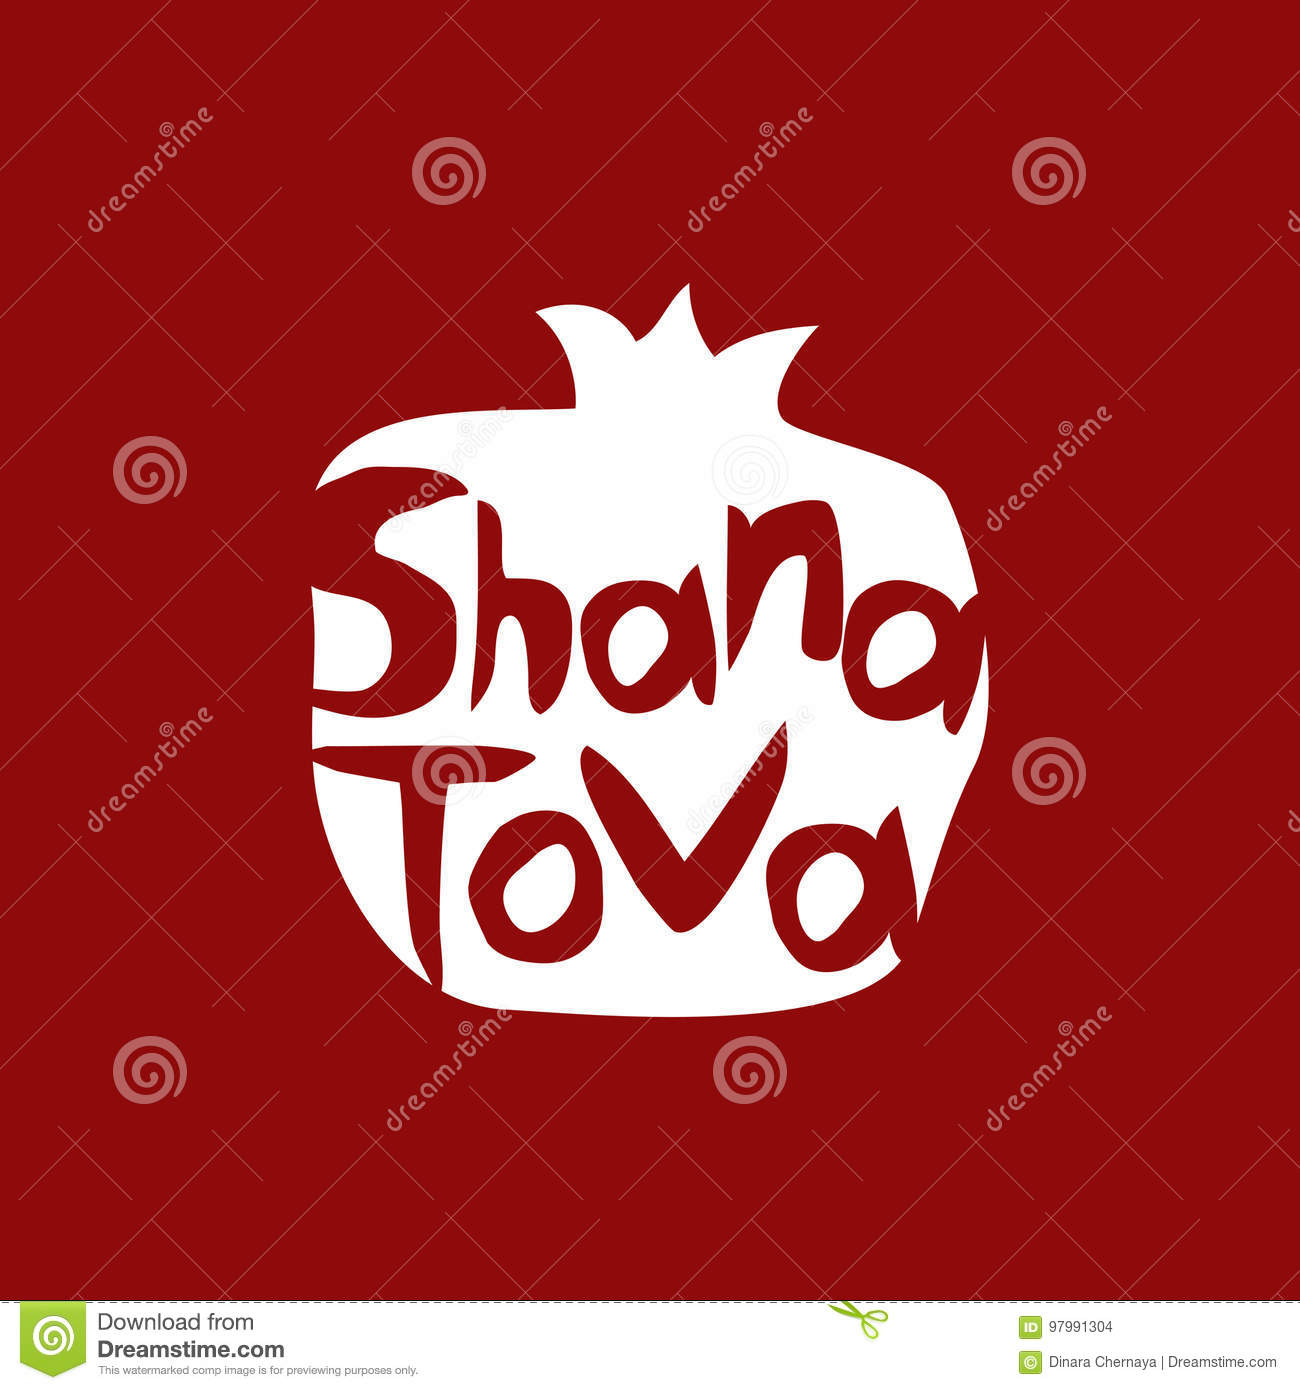 Shana Tova Happy New Year On Hebrew Greeting Card For Jewish New